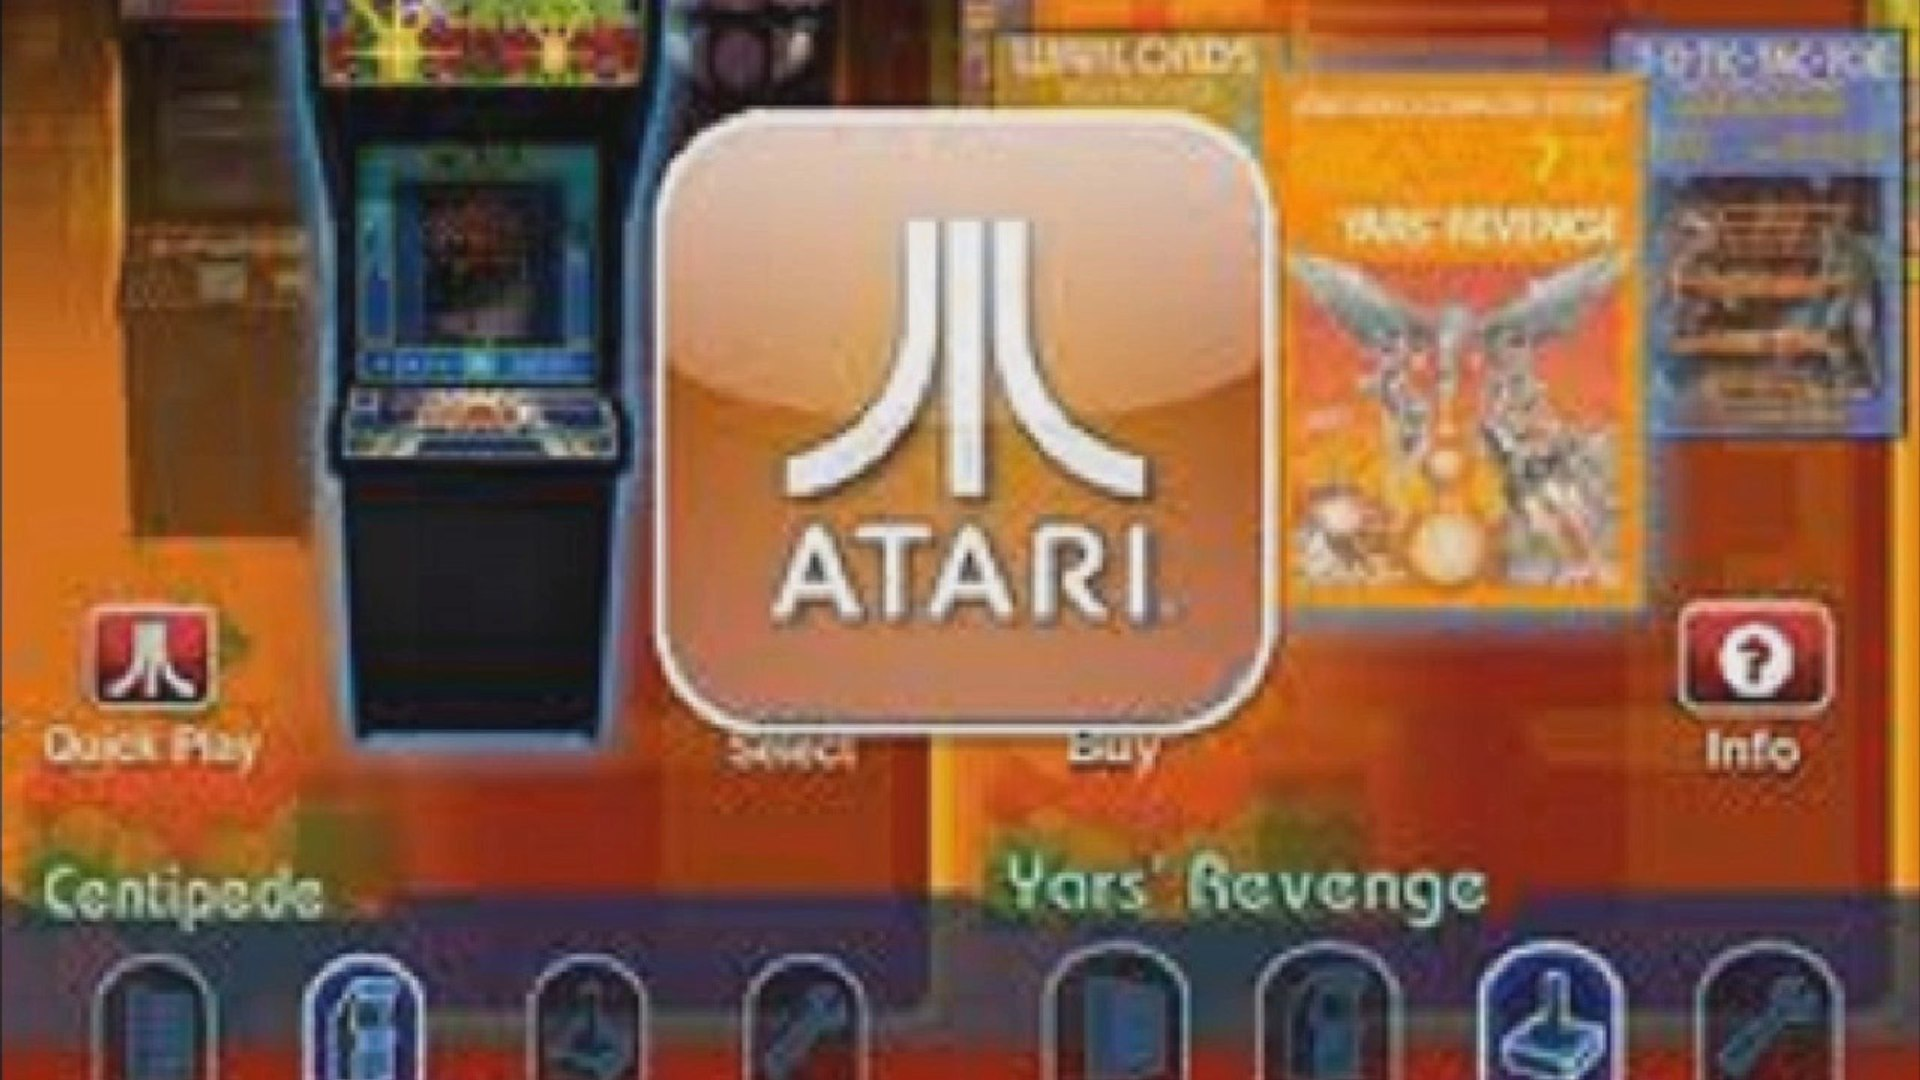 Atari Top 25 - Brief history of Atari